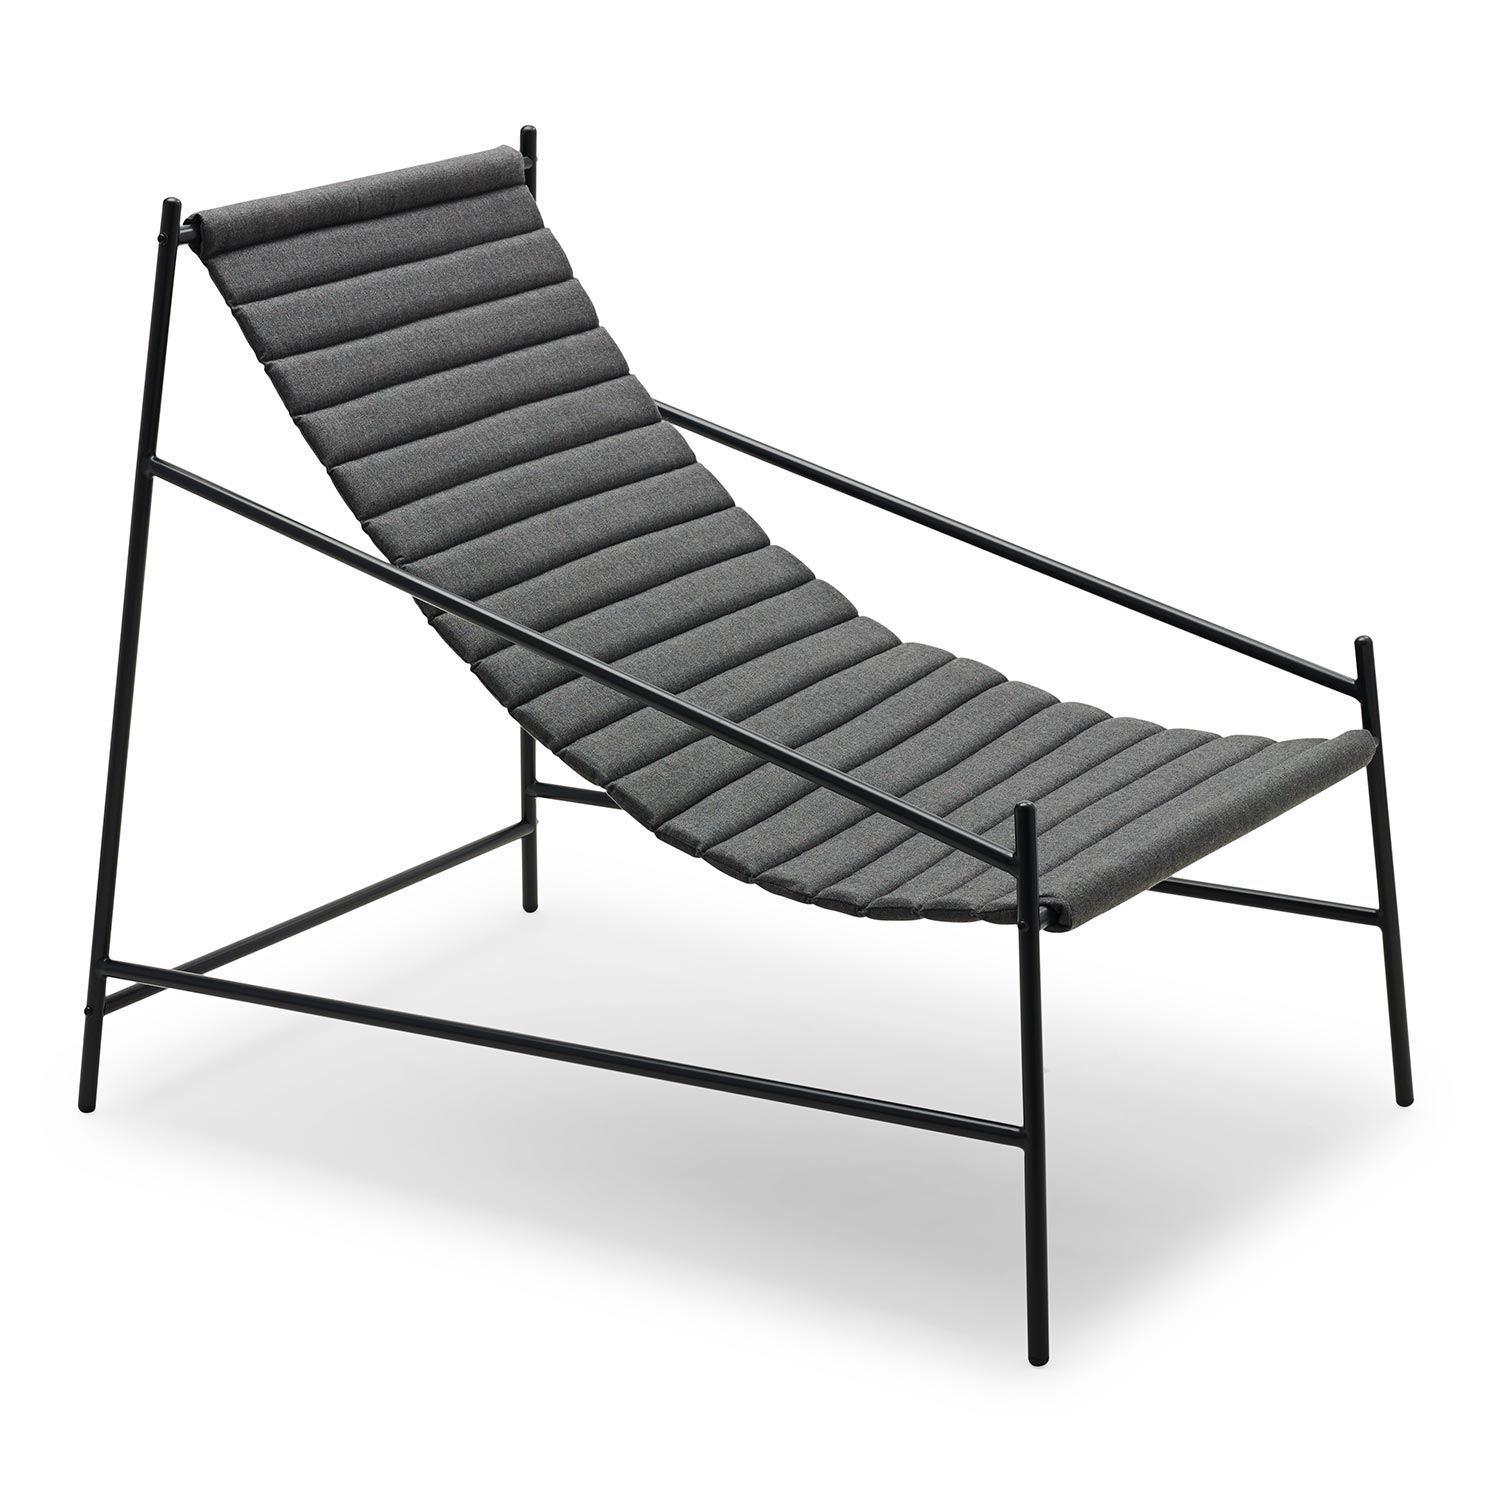 1580531-Hang-Chair-Anthracite-Black-Frame-01